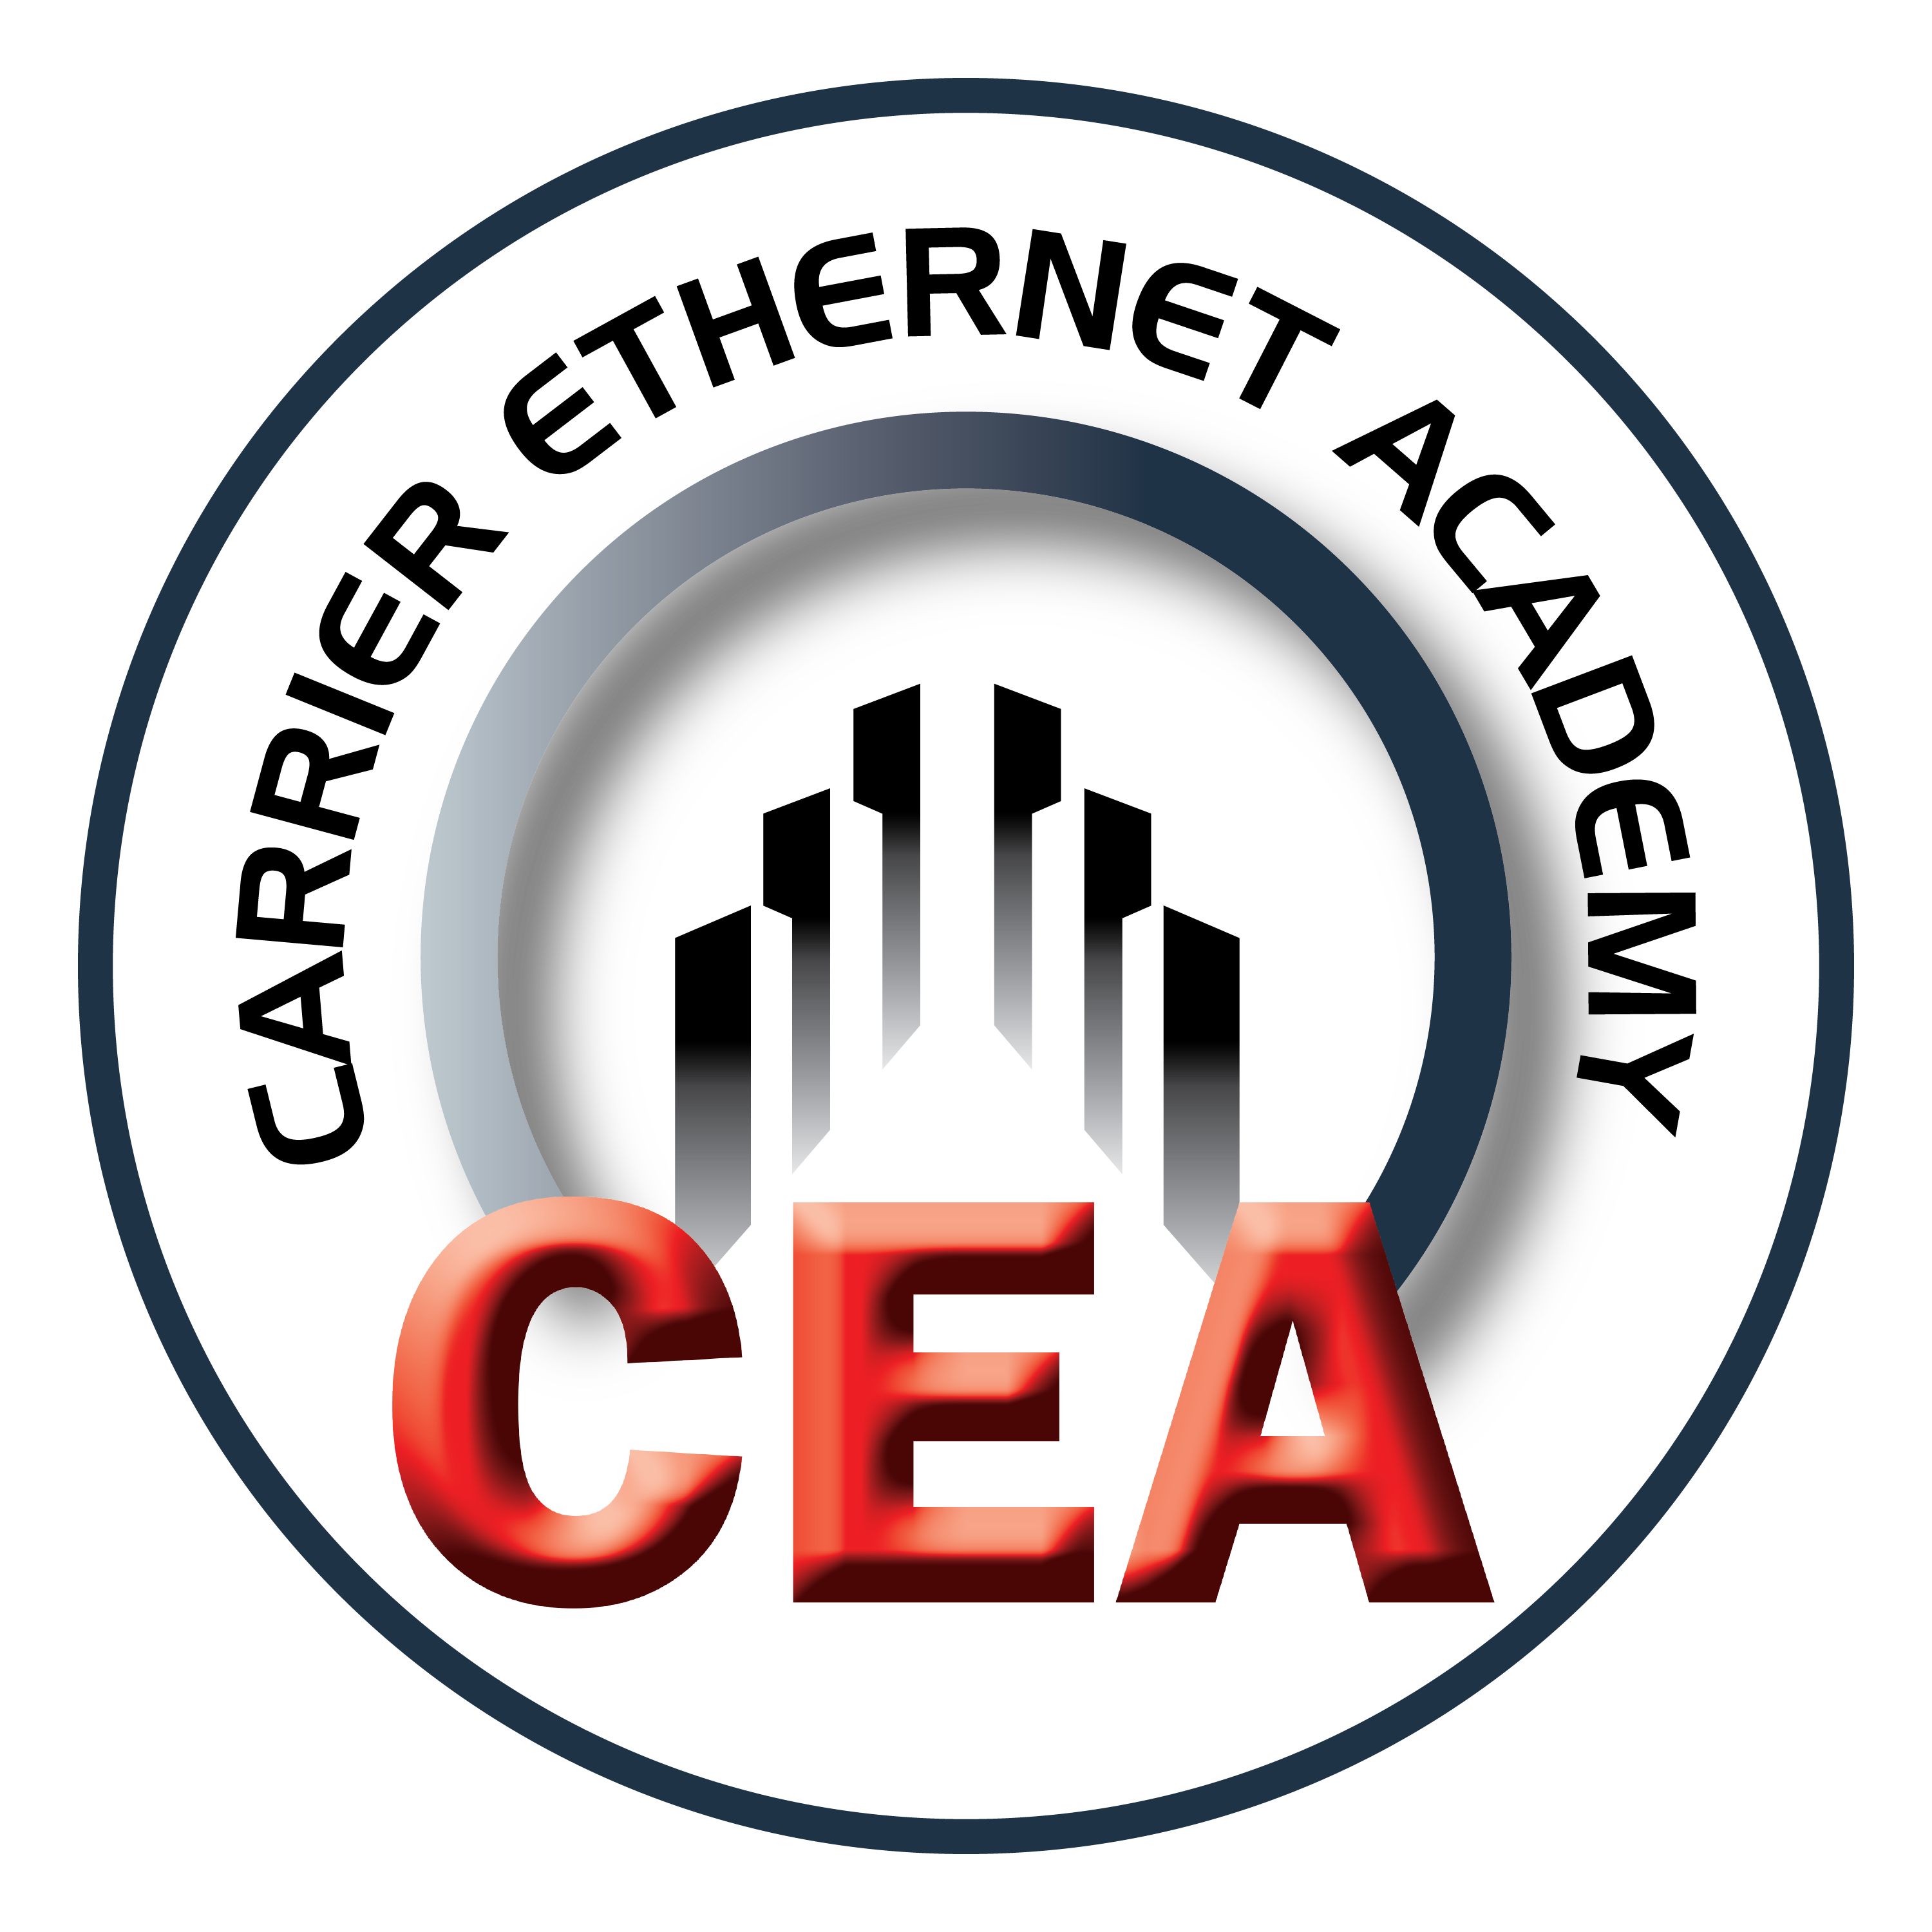 CEA_Final_Logo_CEA_COLOUR